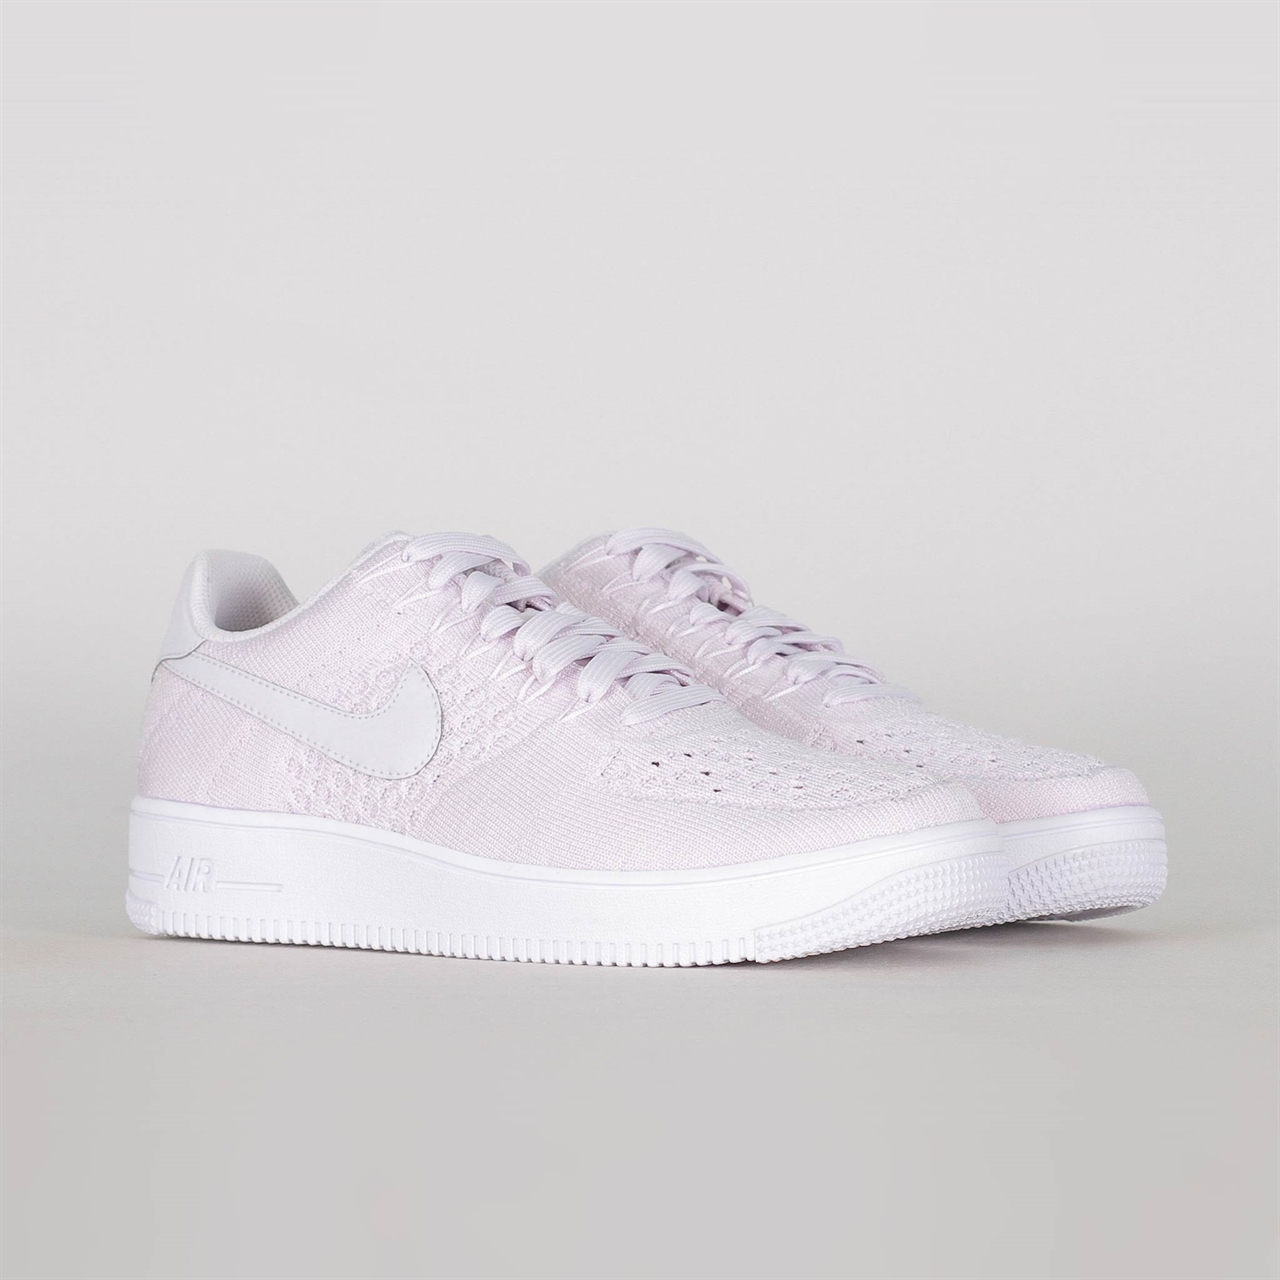 c5ad6c552cf Shelta - Nike Sportswear Air Force 1 Ultra Flyknit Low (817419-500)